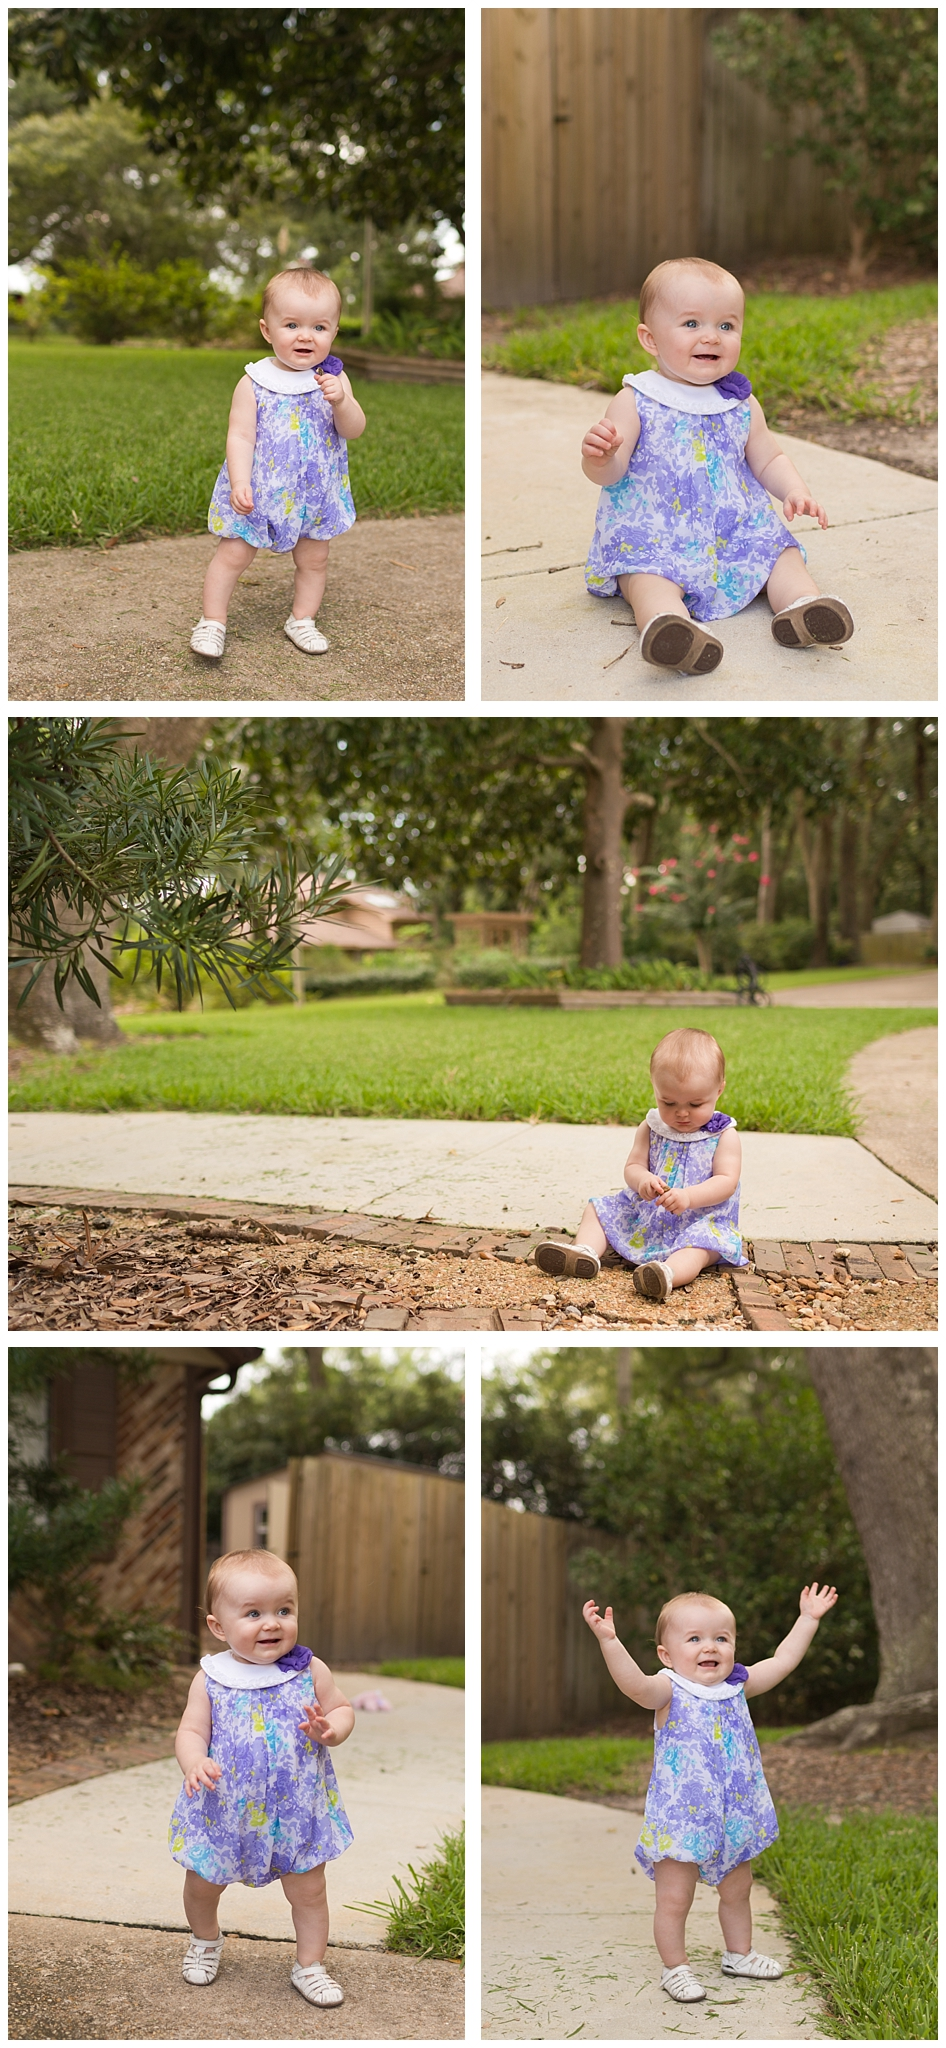 portraits of cute one-year-old girl in front yard with purple floral dress